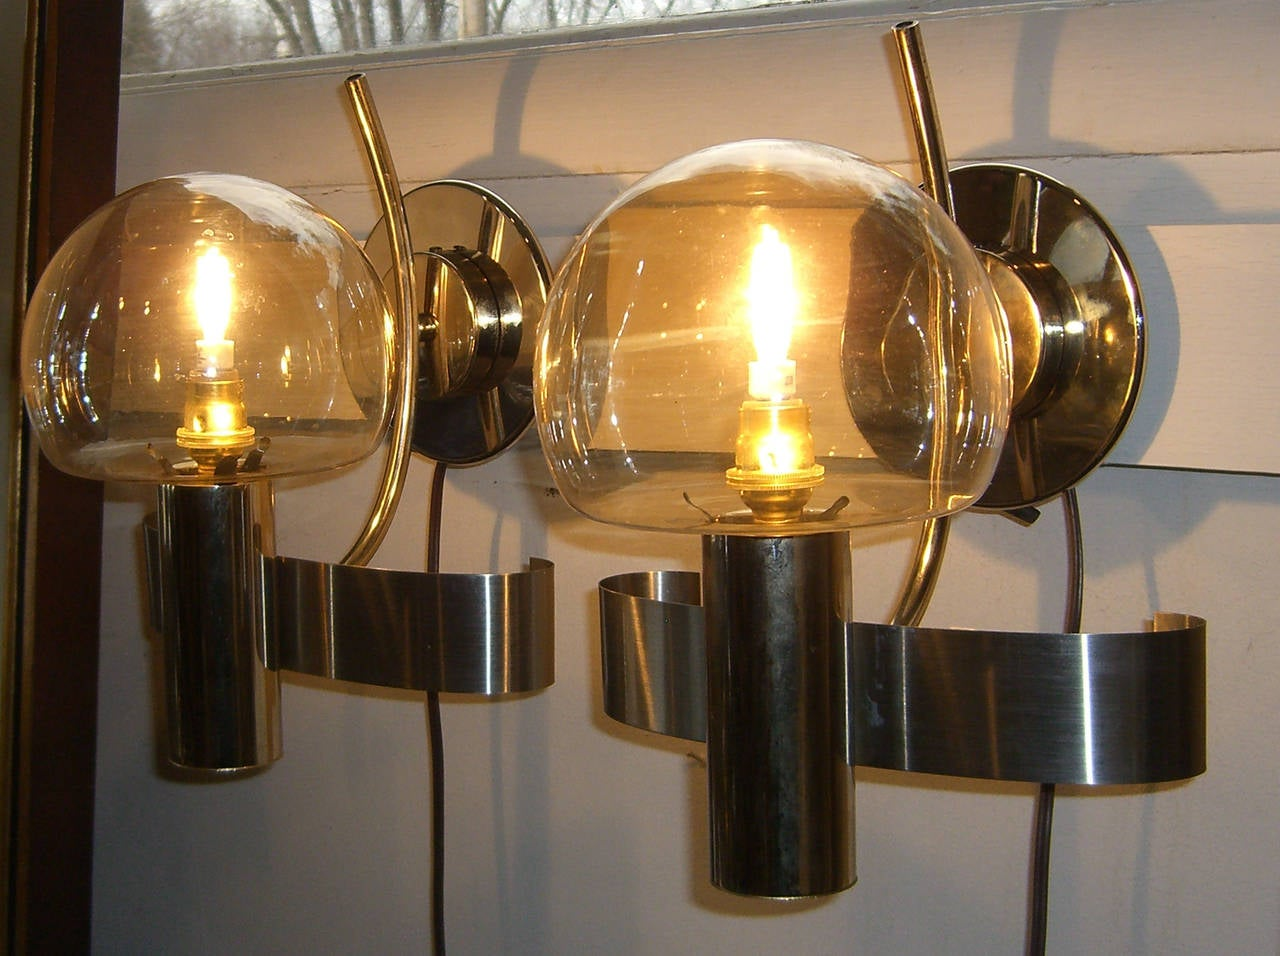 Pair of Mid-Century Modern Italian Glass and Metal Wall Lights In Excellent Condition For Sale In Mt Kisco, NY